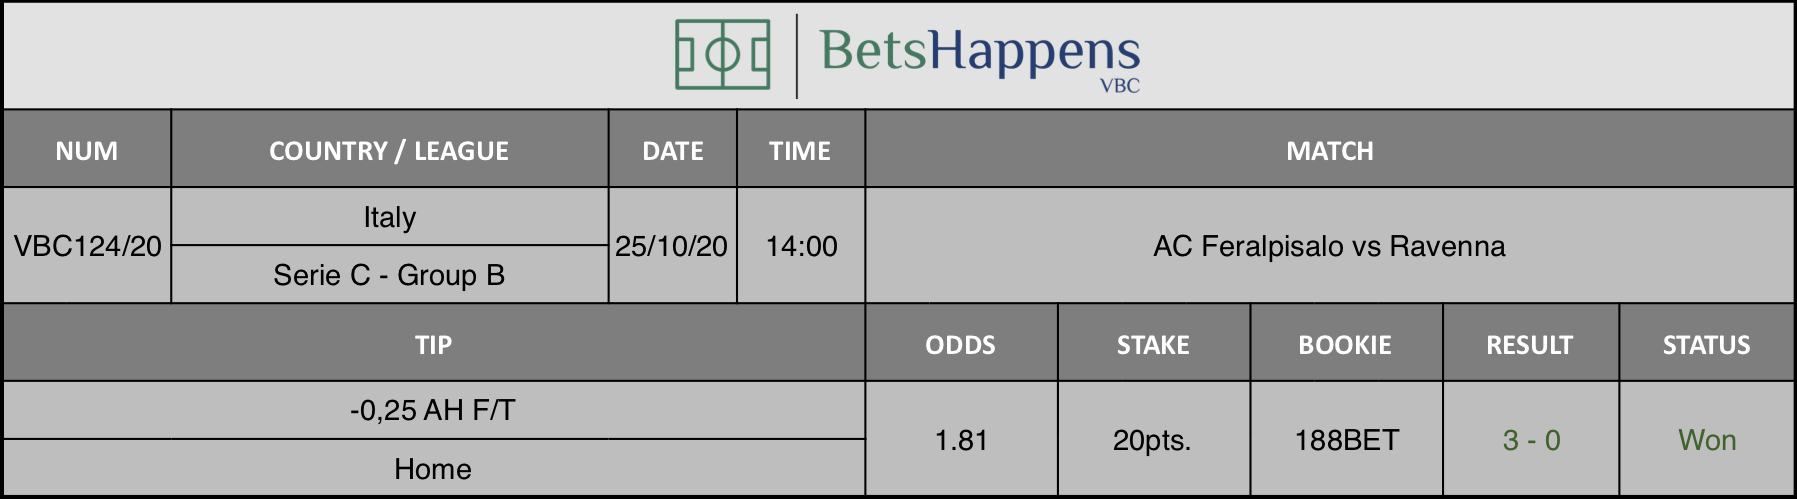 Results of our advice for the AC Feralpisalo vs Ravenna match in which -0.25 AH F / T Home is recommended.